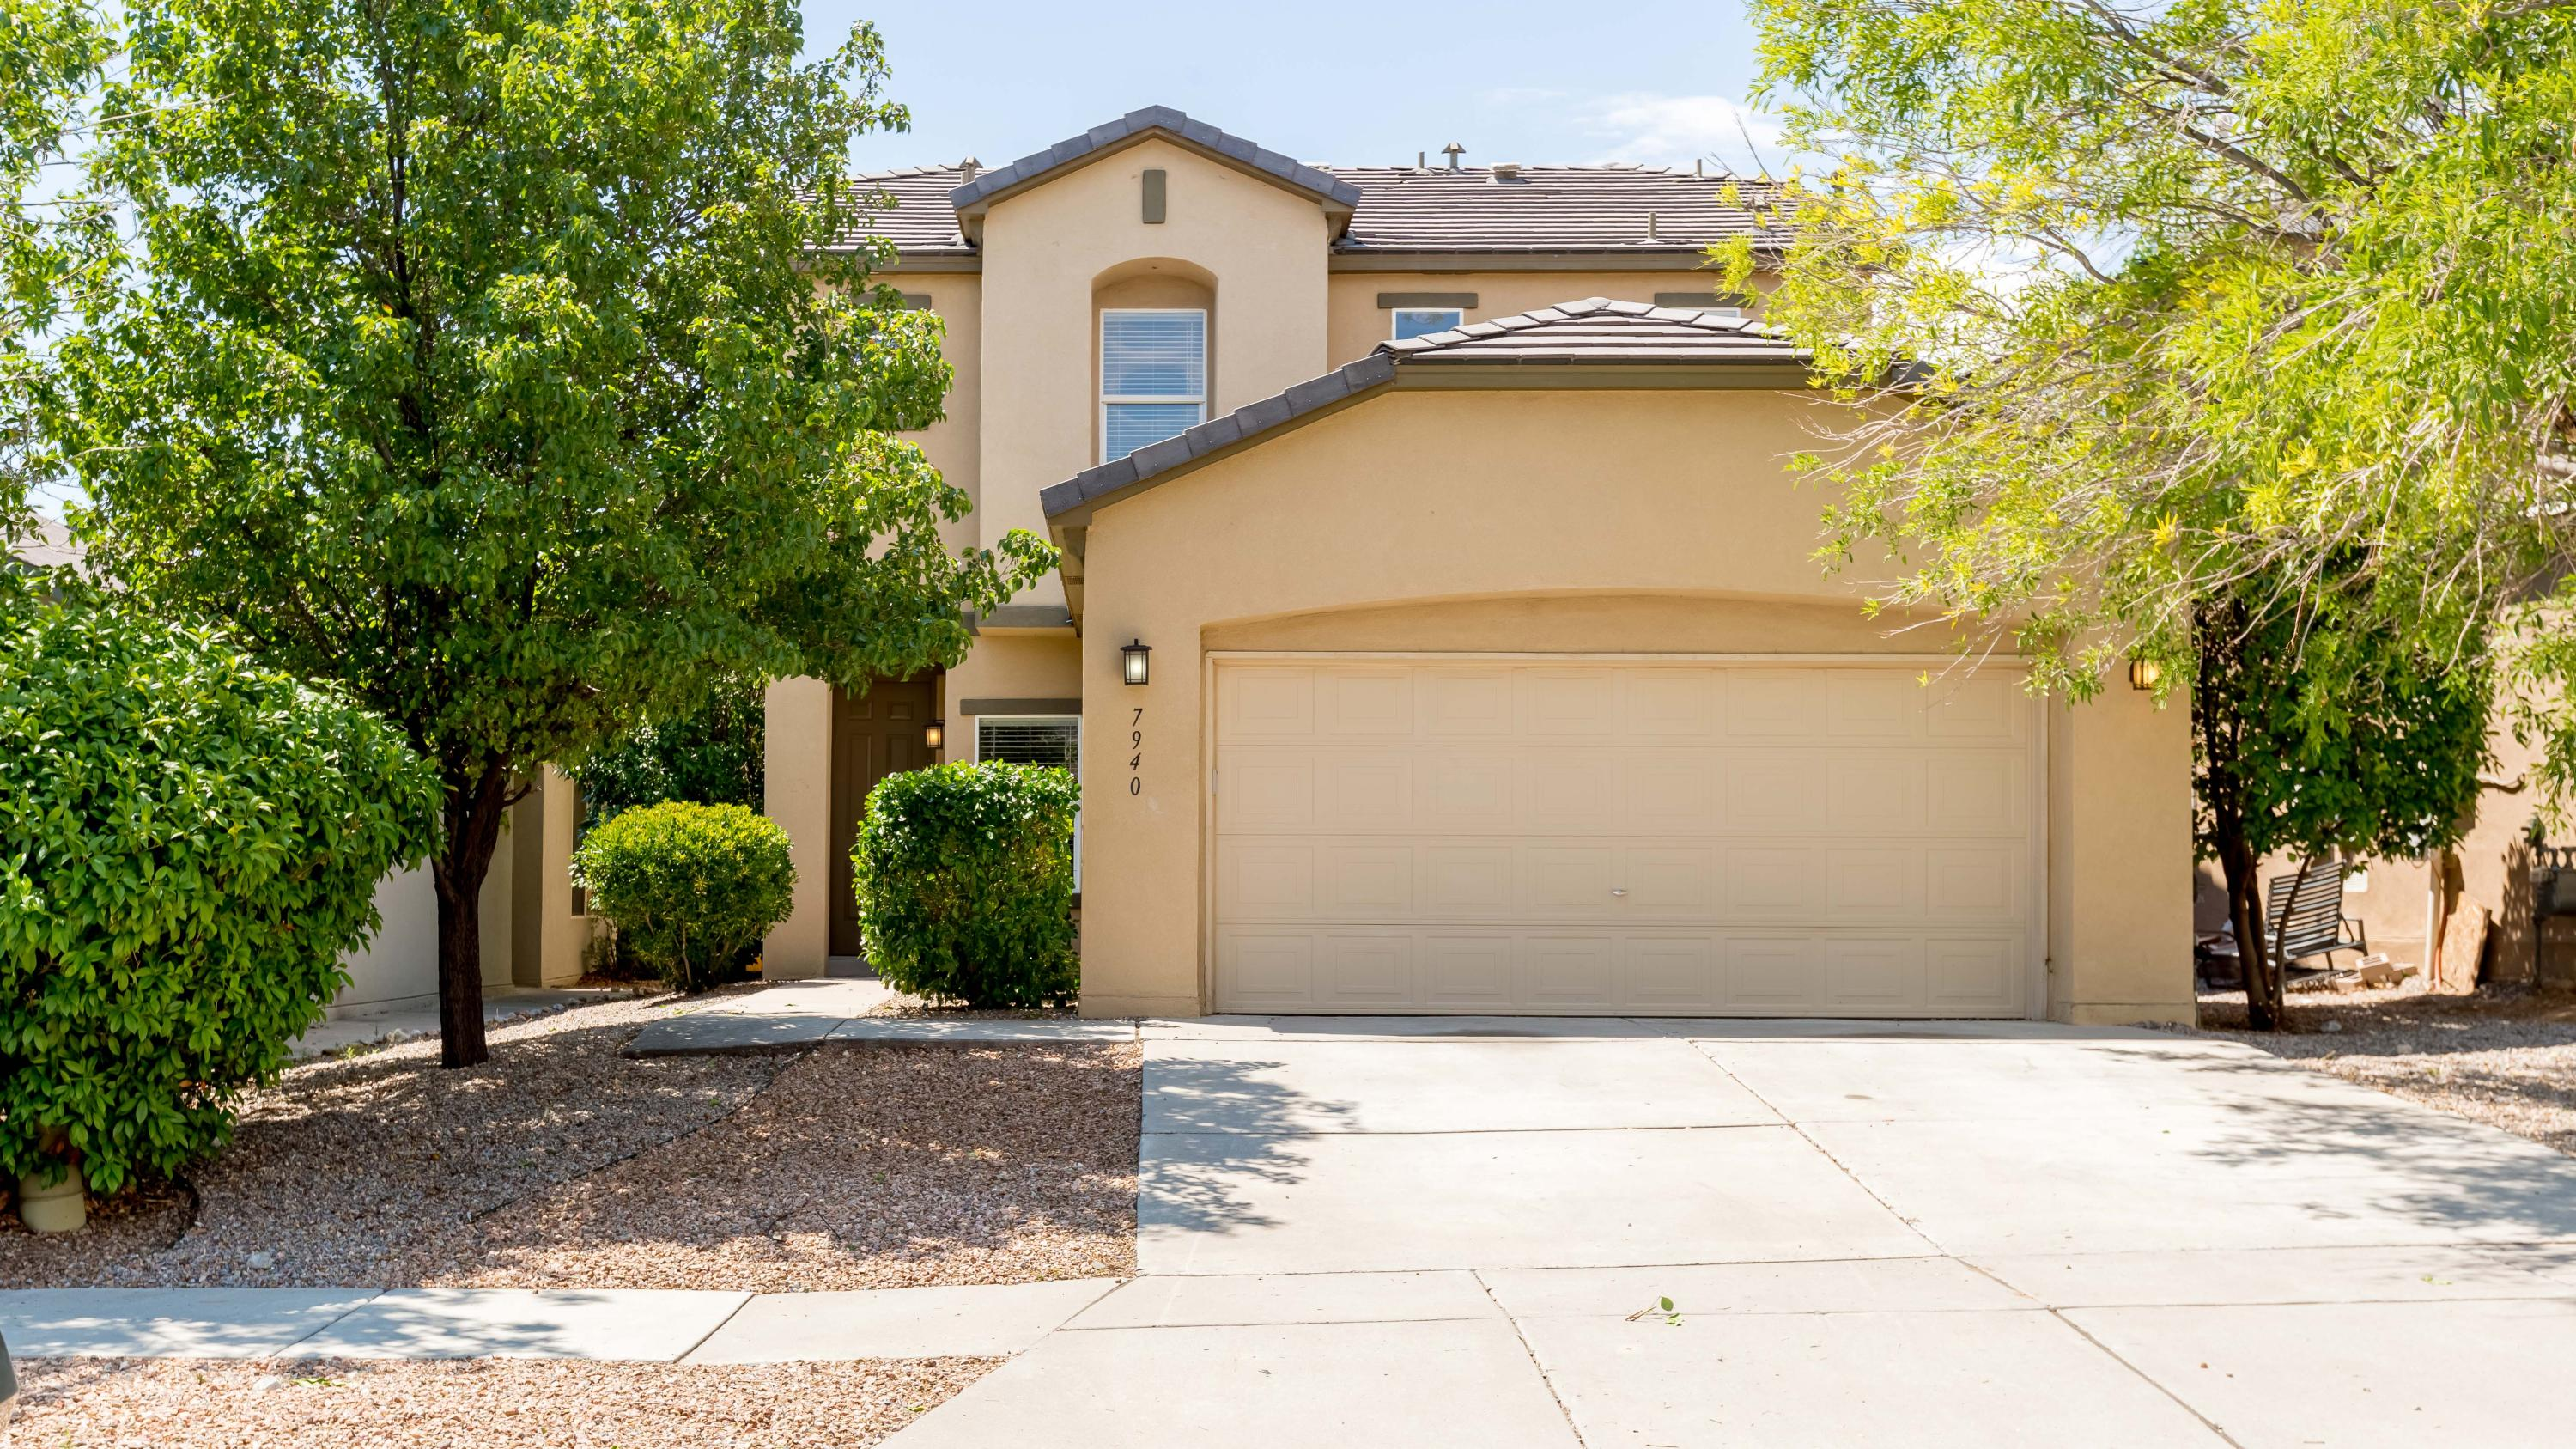 Beautiful Home with office and lots of upgrades! The main living room has tall ceilings and beautiful laminate flooring and a gas fireplace.  The open kitchen features LG stainless appliances including double ovens for the cook in your house!  There's a kitchen island has a bar for seating, breakfast nook, pantry, and elegant countertops. Upstairs in the master suite is a spacious bedroom and a luxurious bath with a separate jetted tub to soak peacefully in and glass shower.  Work from home in your home office with double doors.  Large laundry room and a finished garage with epoxy floor.  Enjoy the outdoors in the backyard with professionally designed landscape and turf.